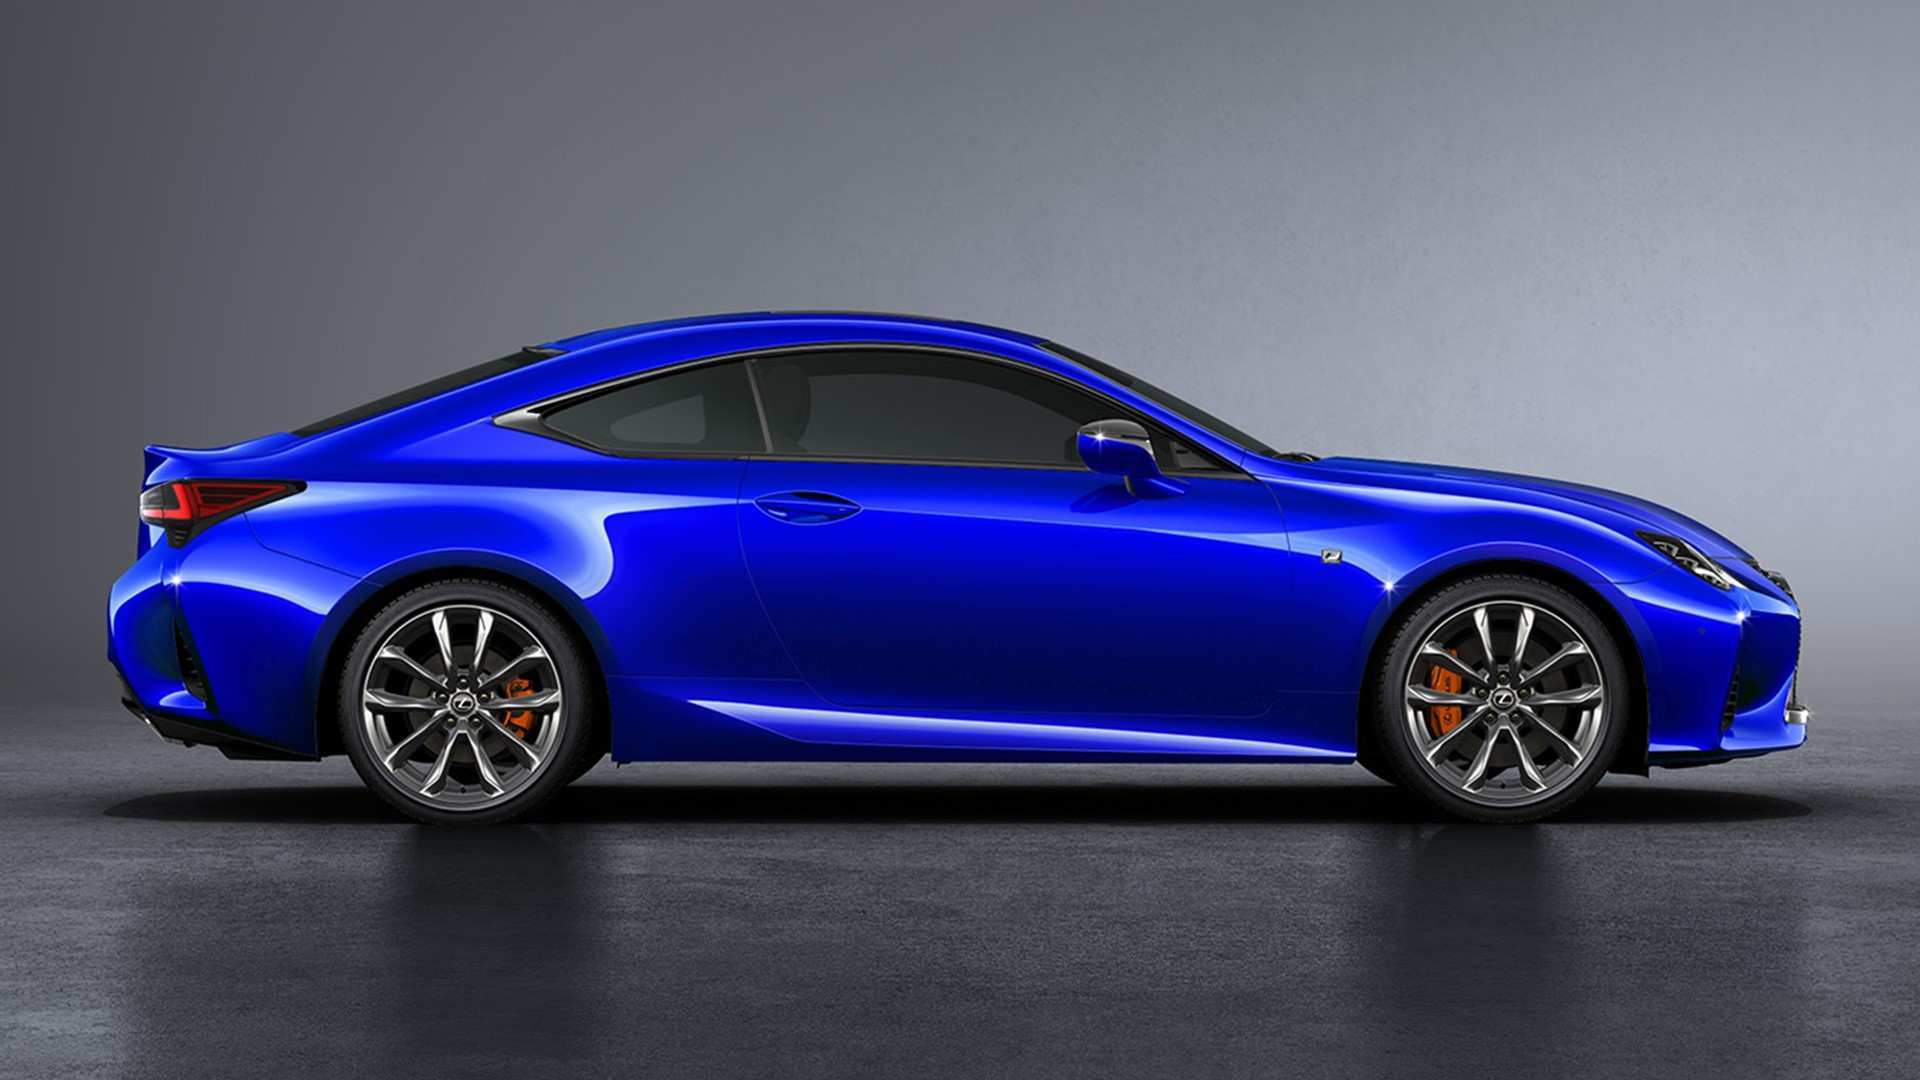 66 New 2019 Lexus Rc Price with 2019 Lexus Rc